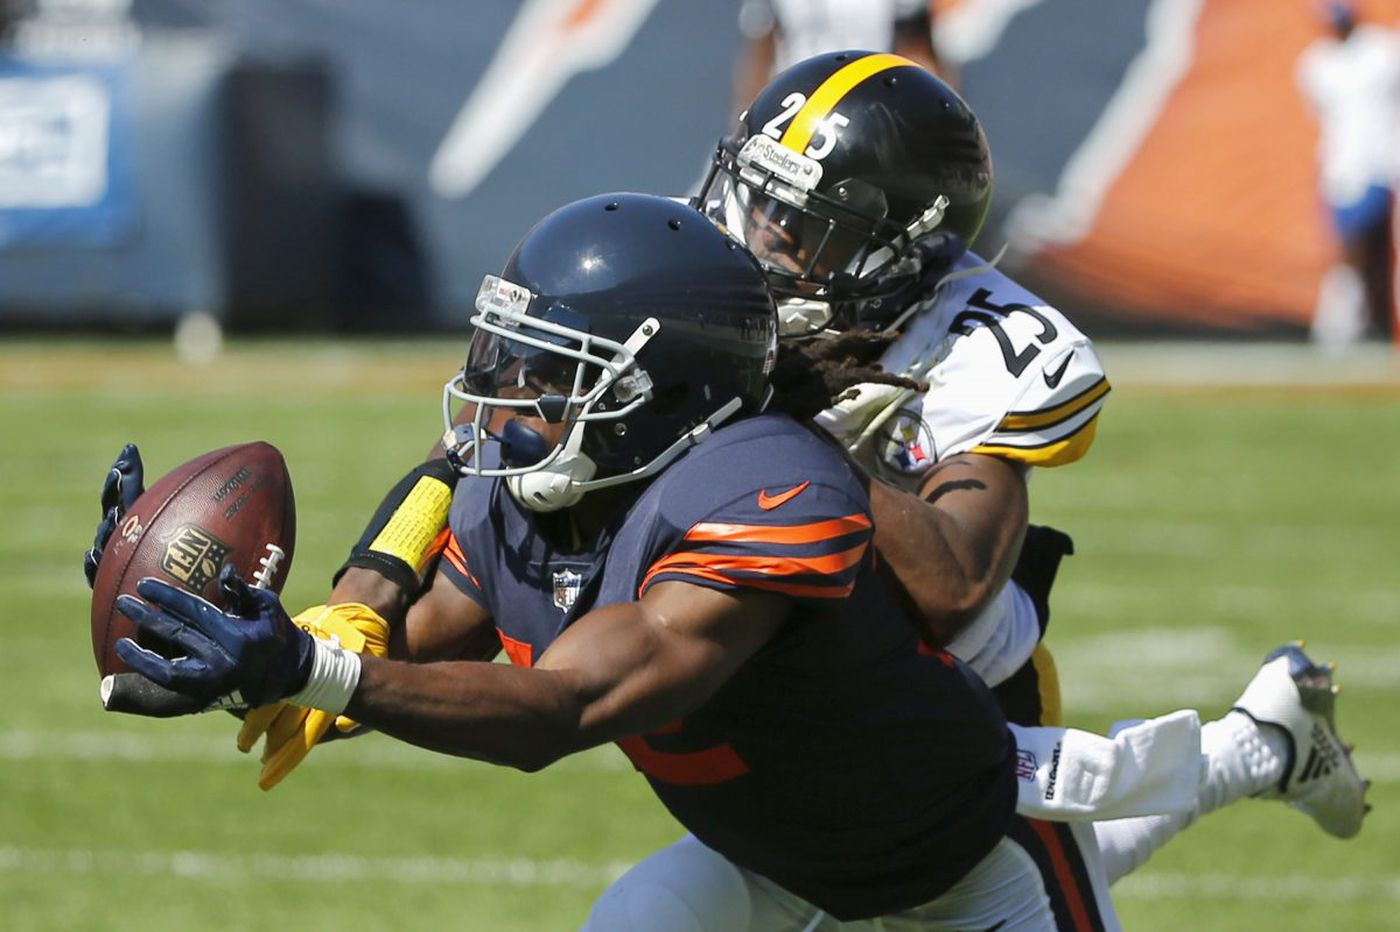 Markus Wheaton, former Bears and Steelers receiver, signs with Eagles